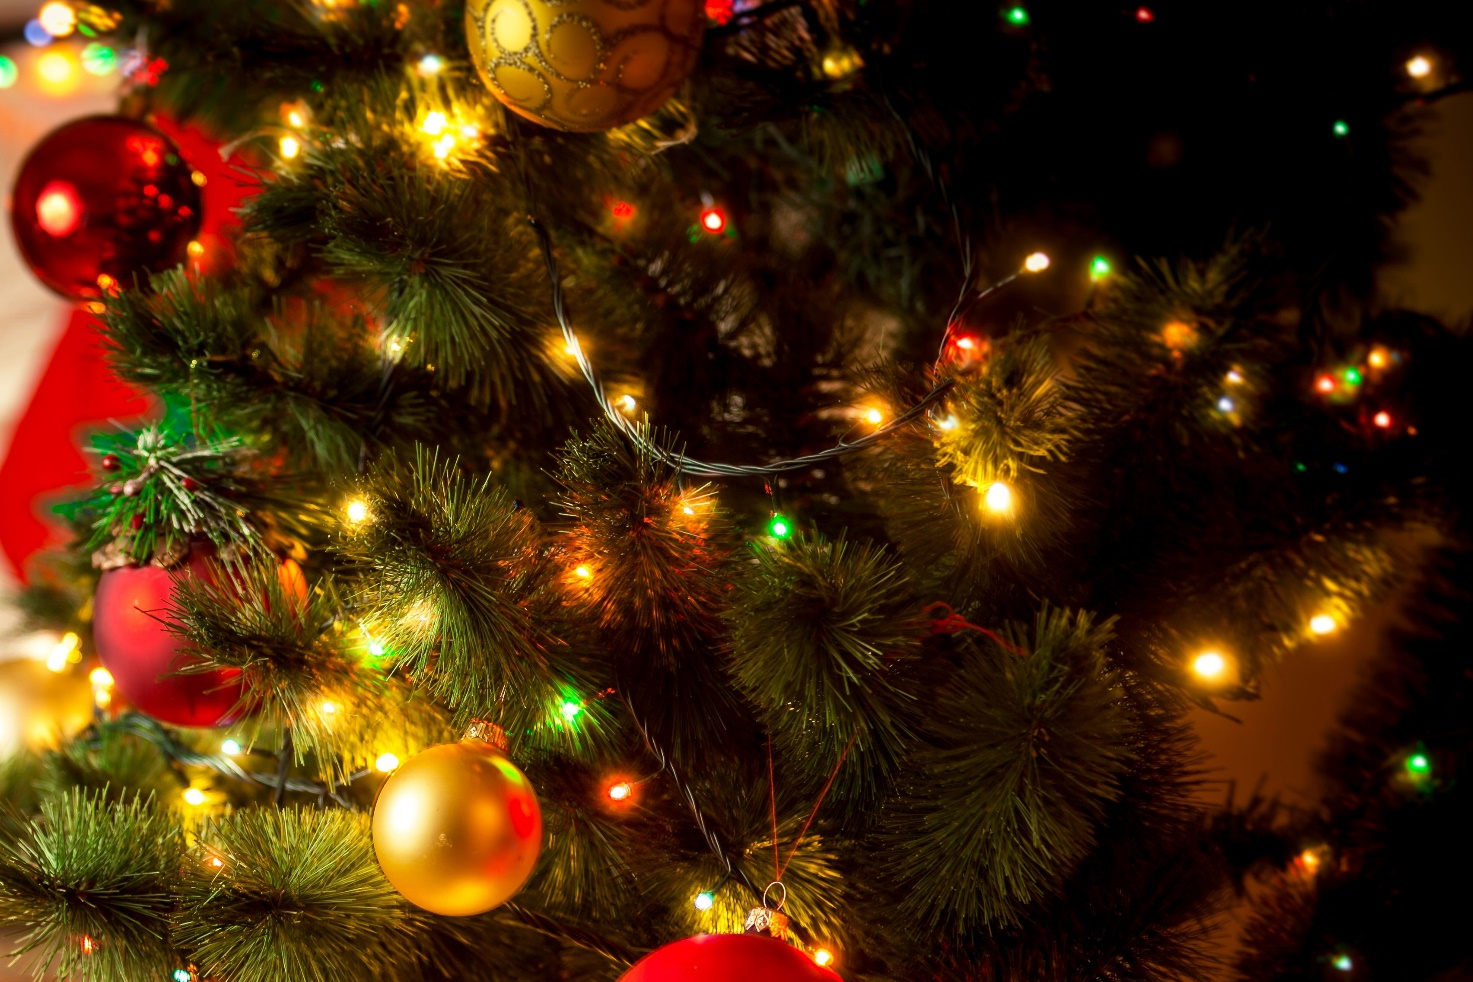 Christmas lights to make your home shine bright this holiday season